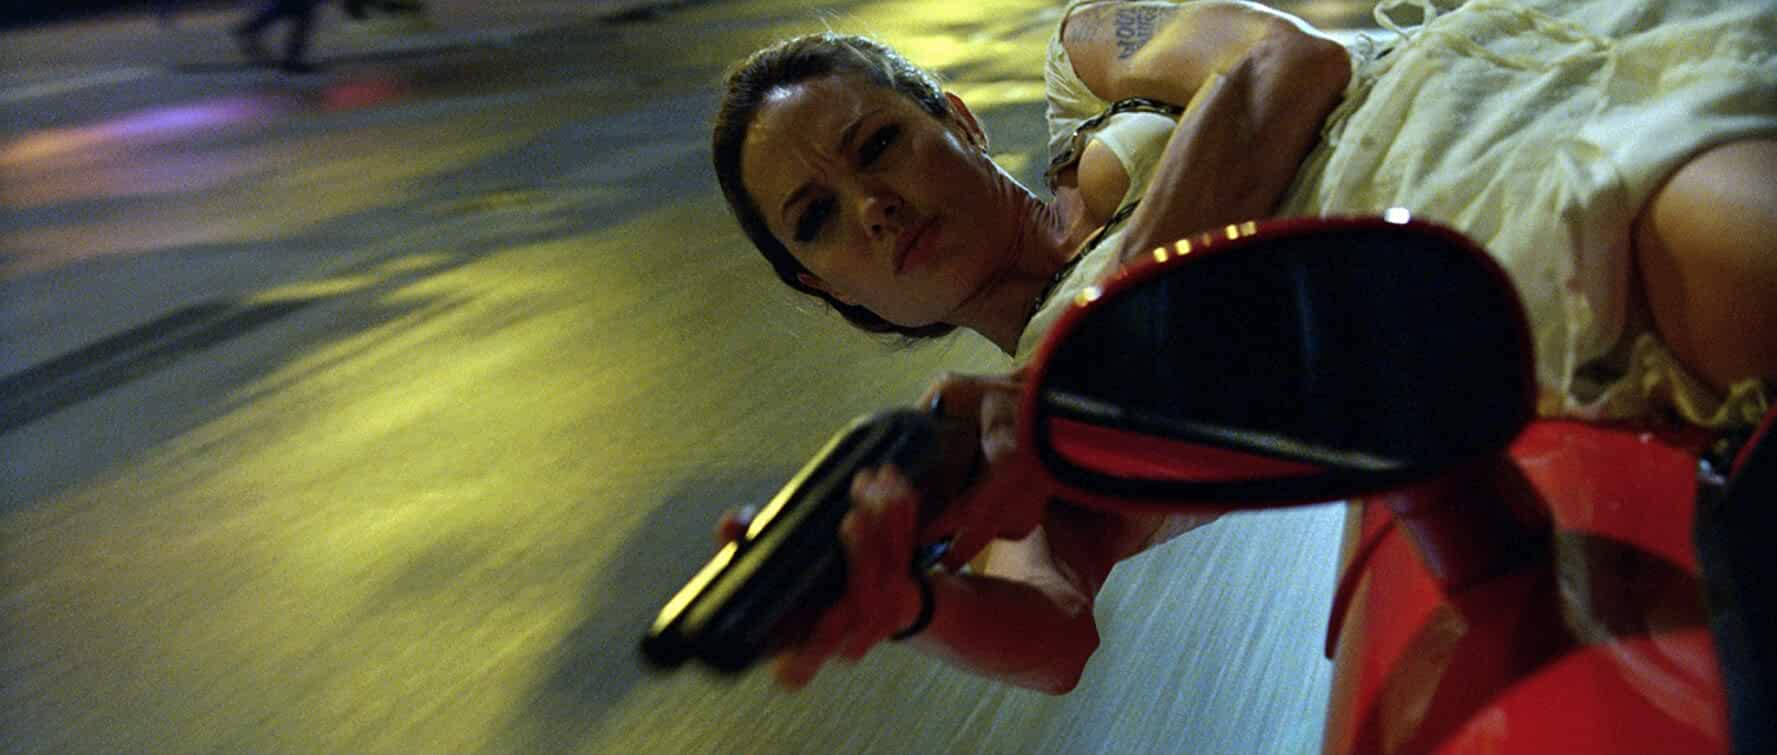 Angelina Jolie in Wanted (2008)